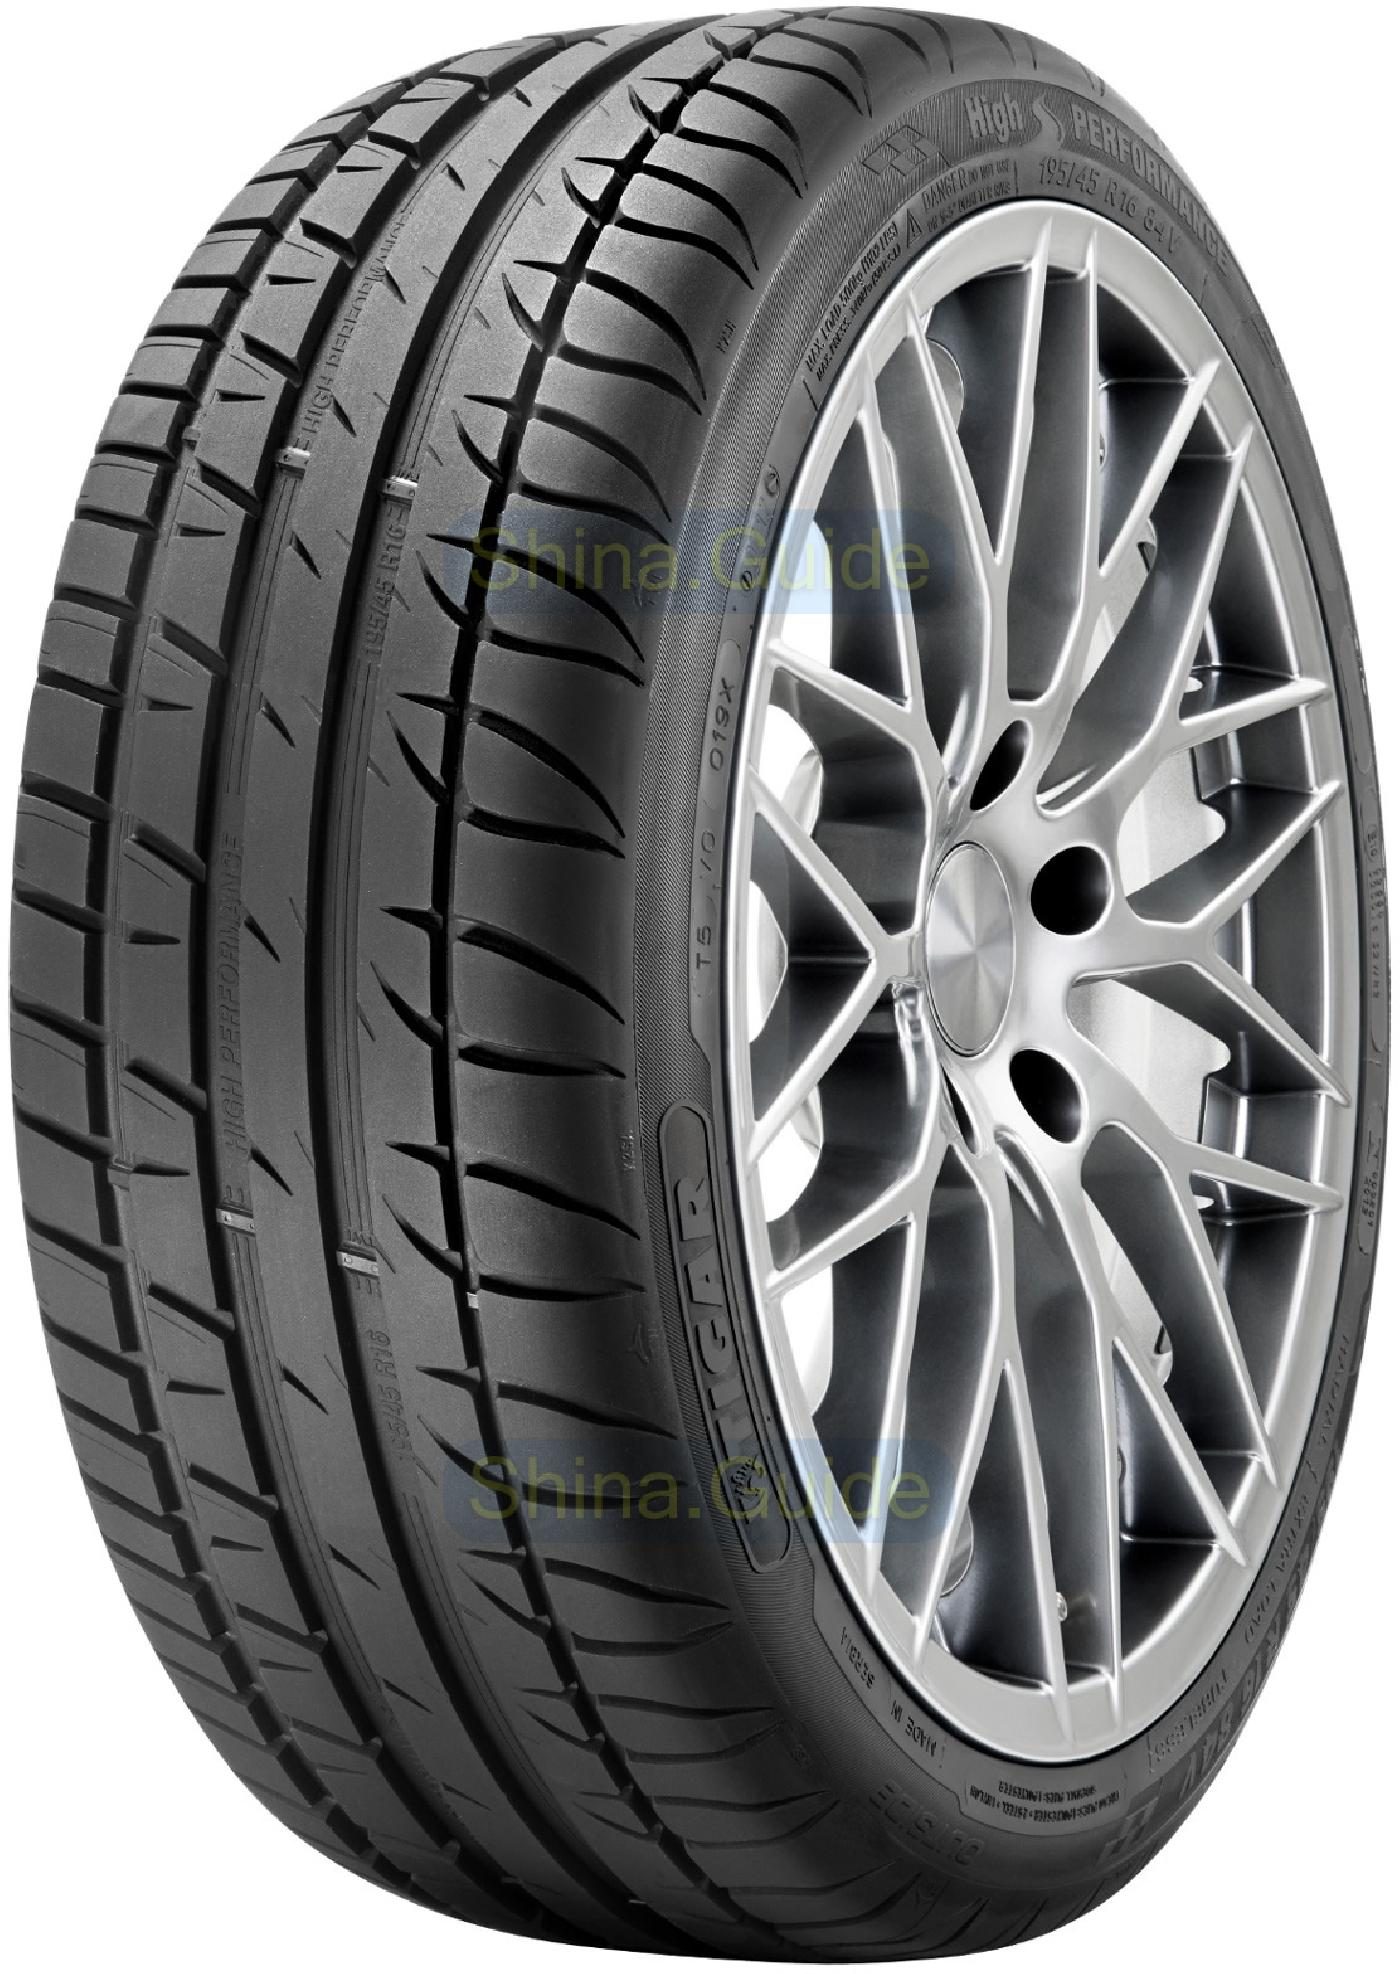 TIGAR HIGH PERFORMANCE 205/45 R16 87W